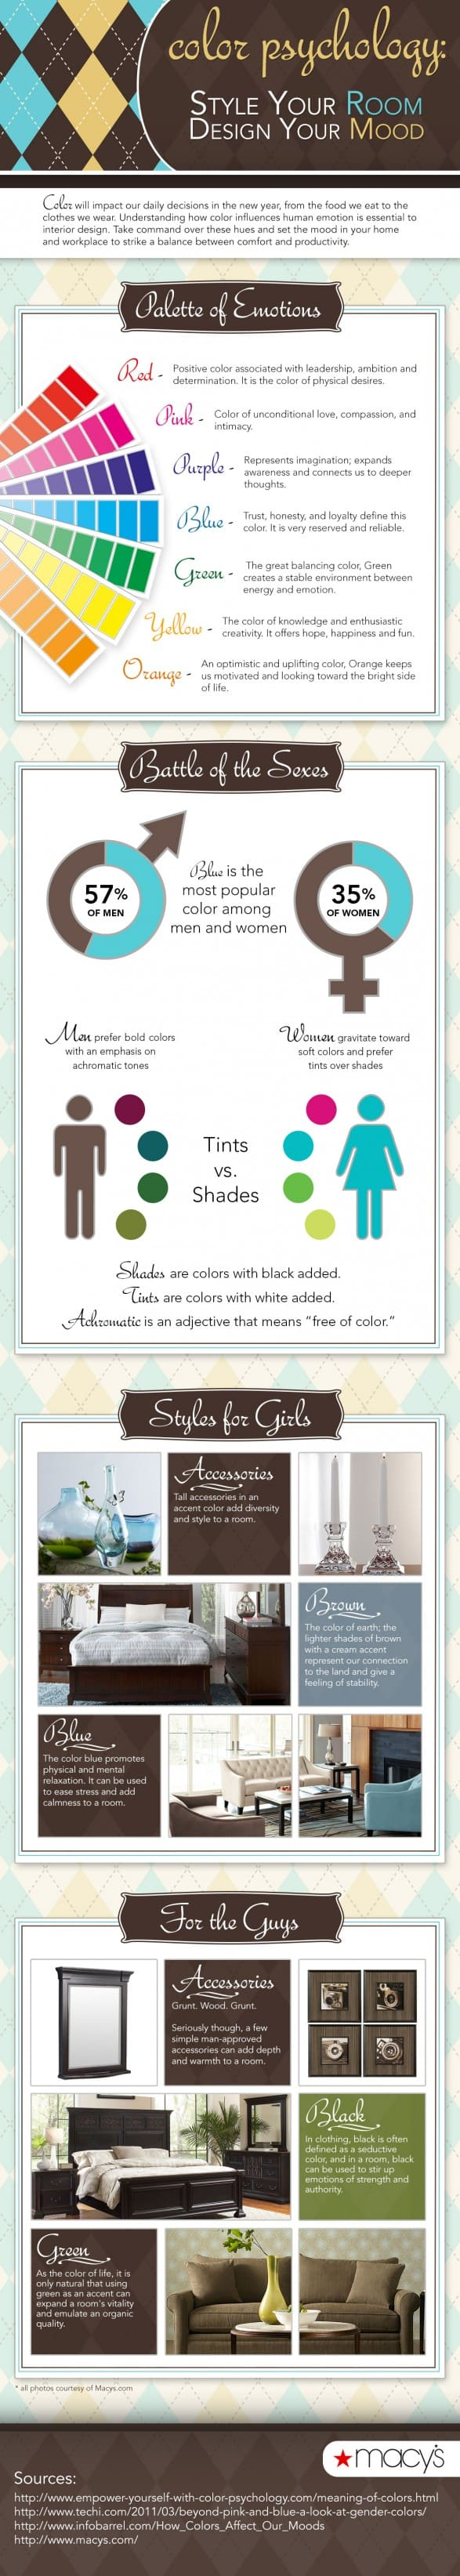 Color Psychology Style Your Room Design Your Mood